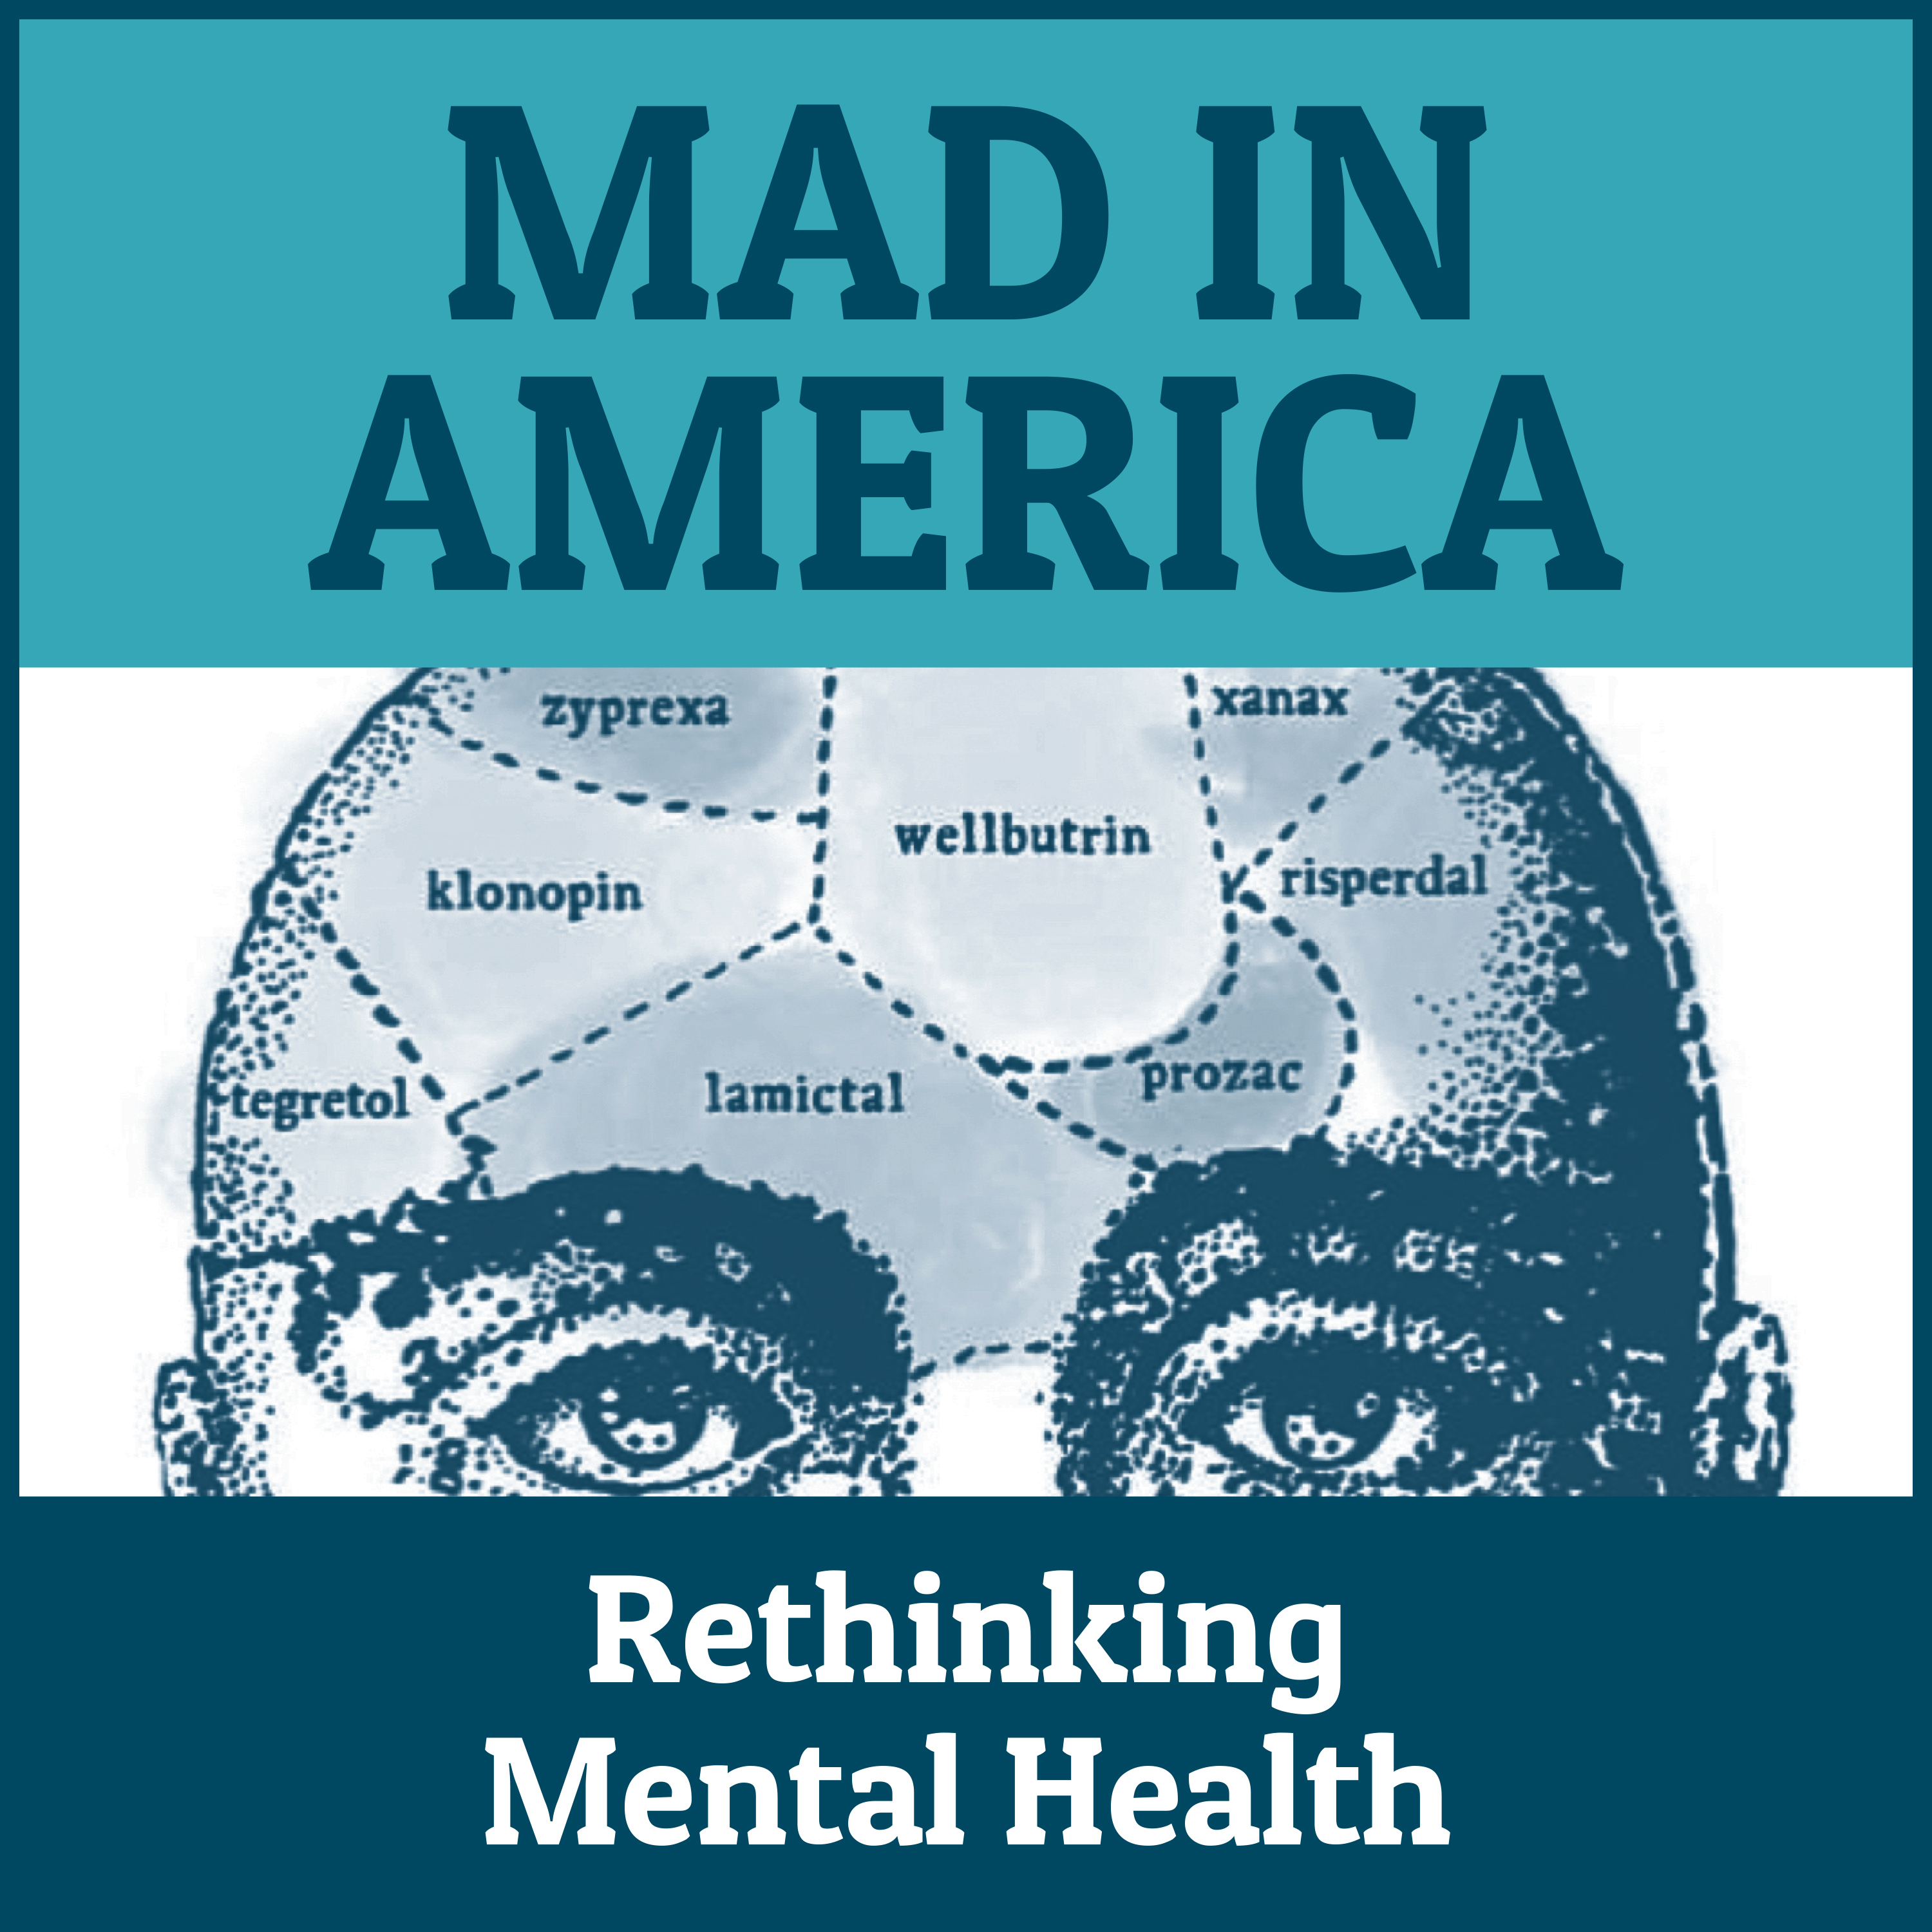 Mad in America: Rethinking Mental Health - Anne Guy - How Therapists Can Help With Psychiatric Drug Withdrawal